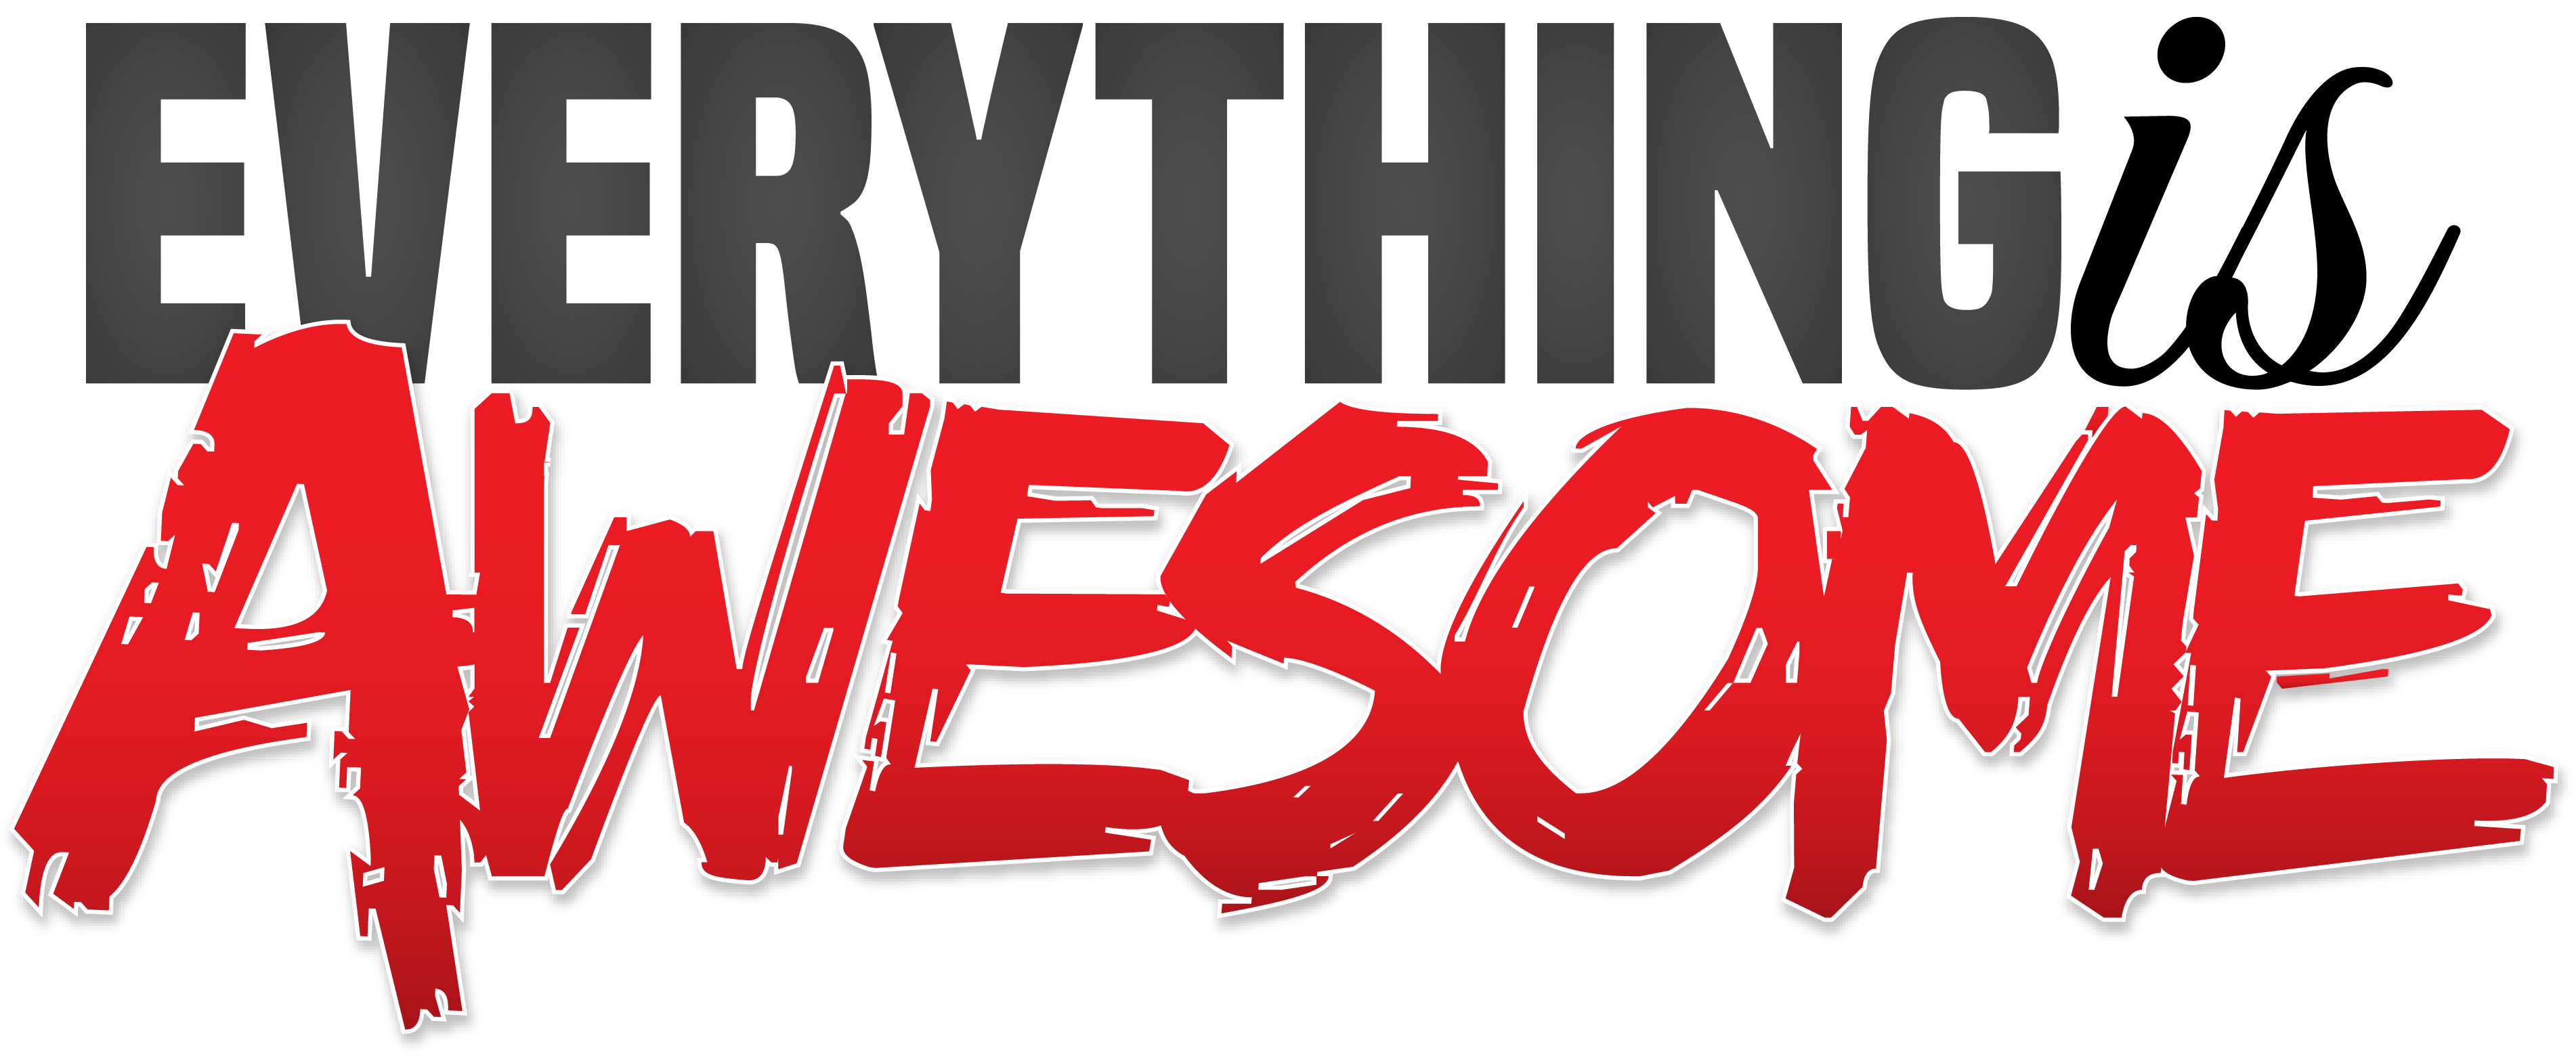 everything is awesome actual size managing cloud and datacenter by